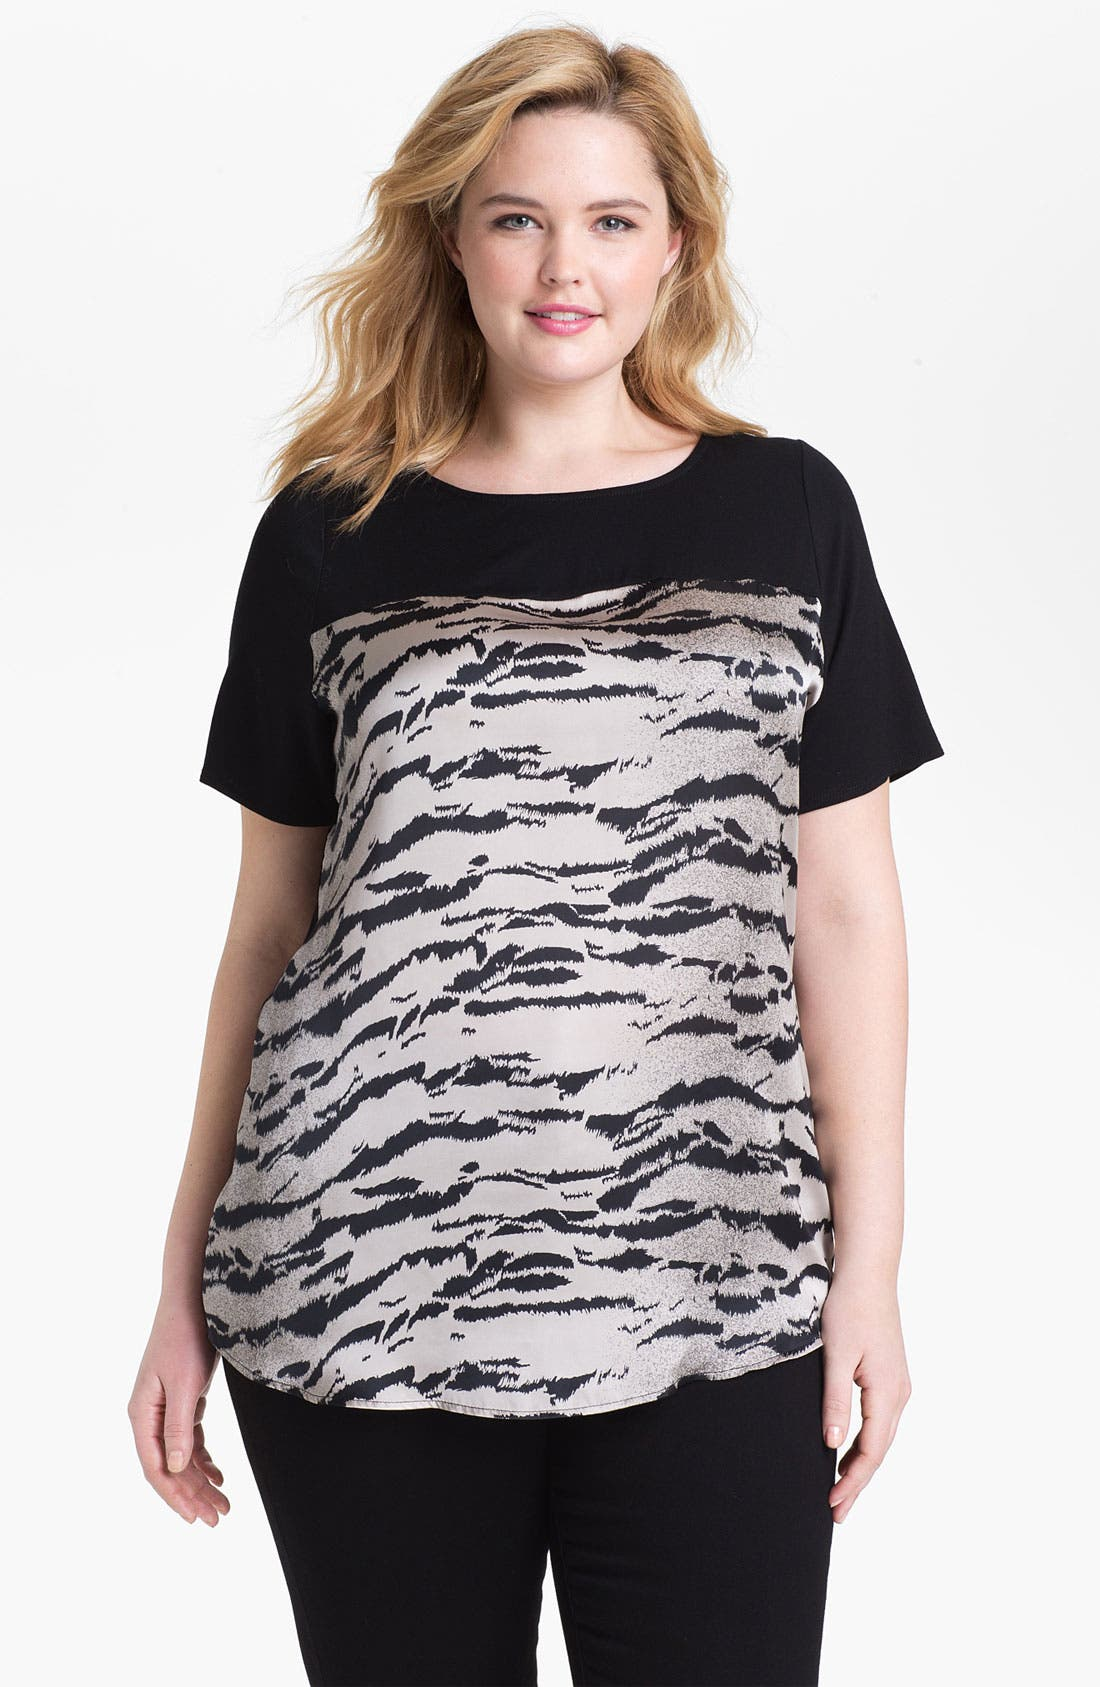 Alternate Image 1 Selected - Evans Tiger Print Blouse (Plus Size)